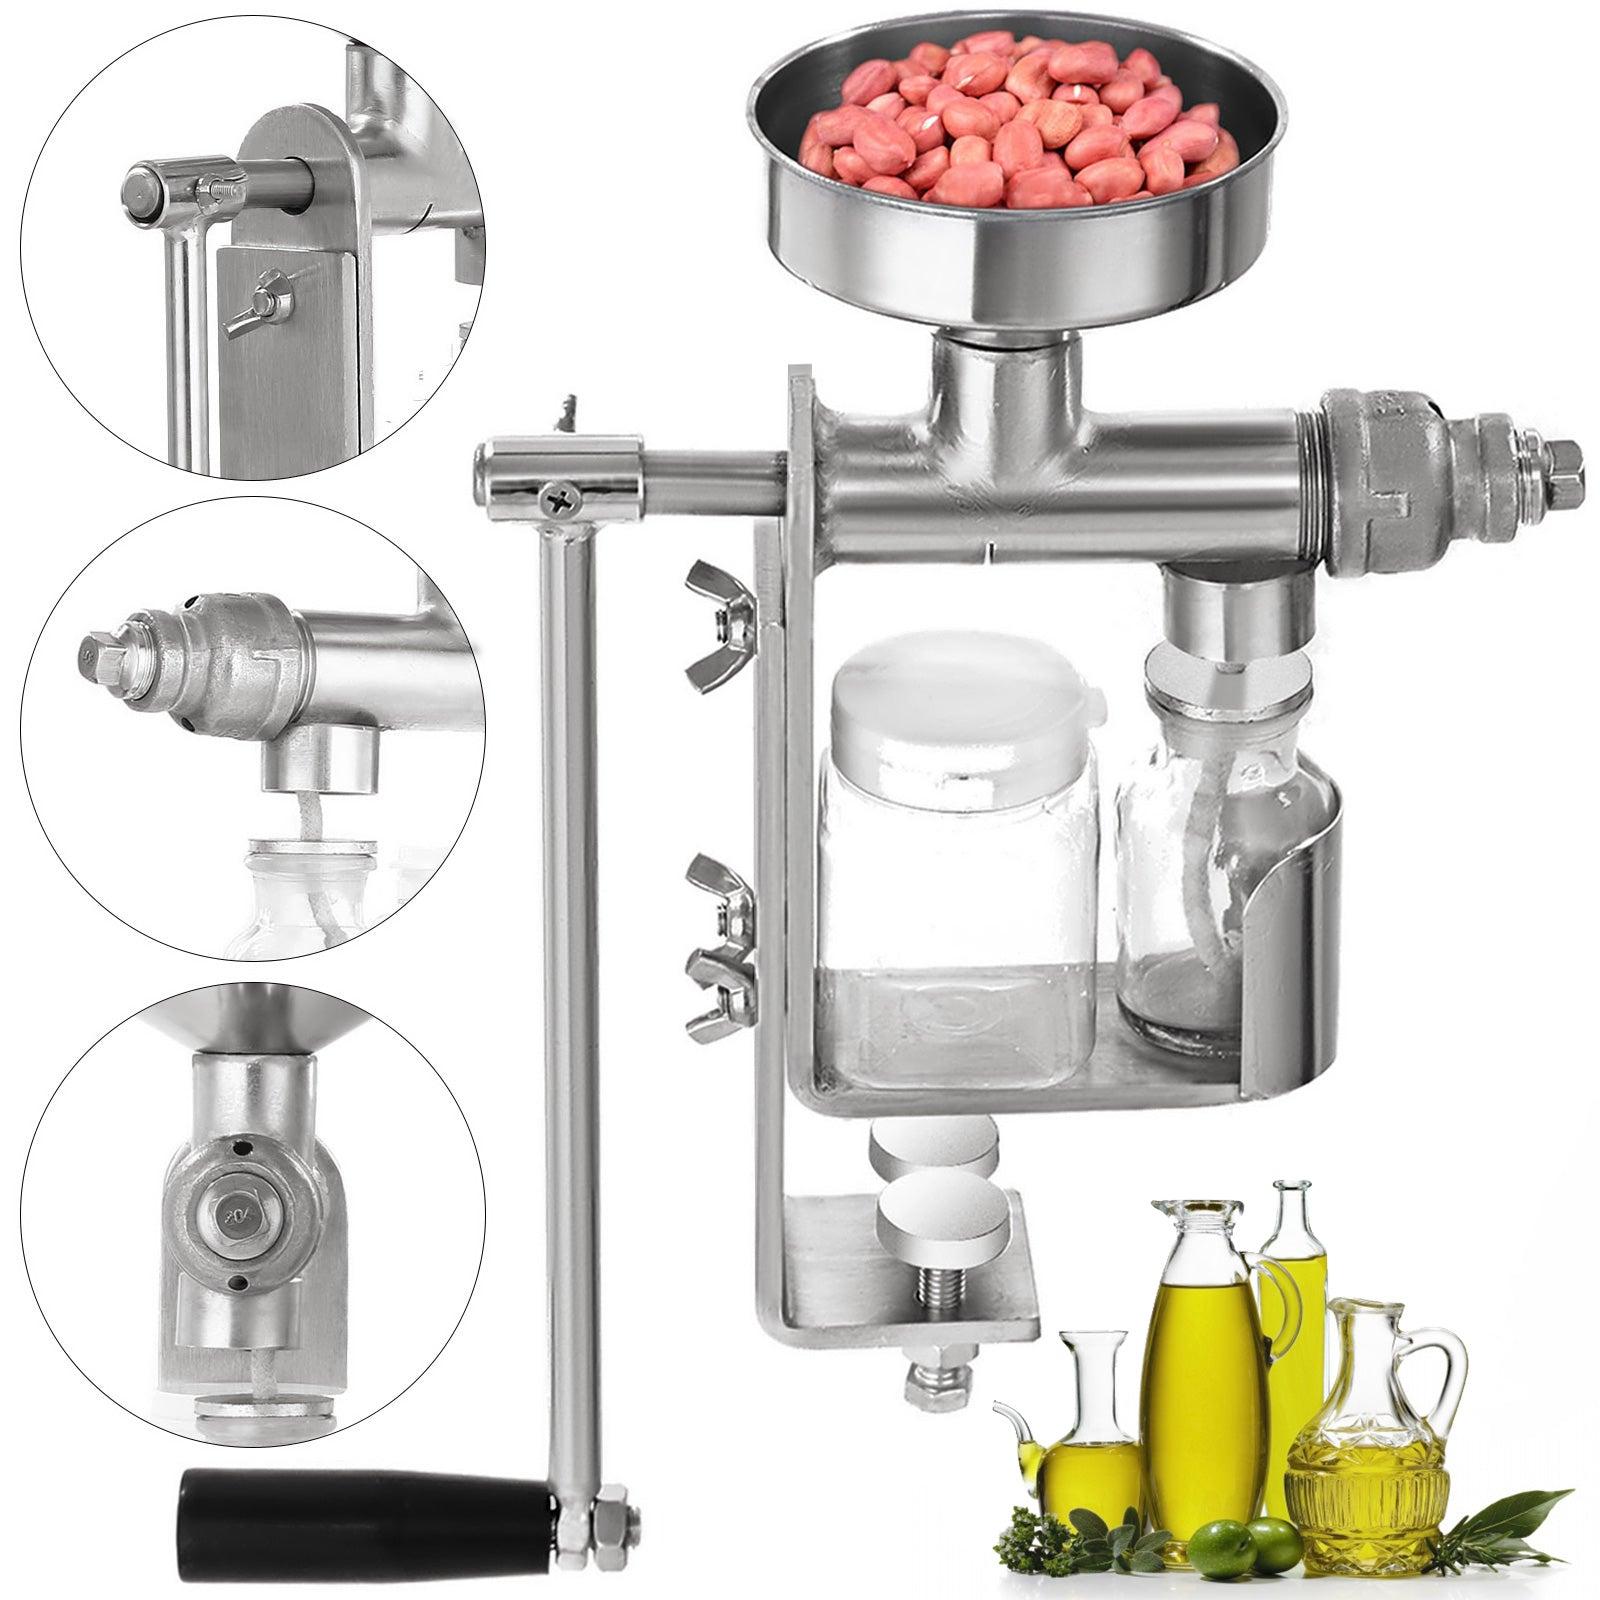 Hand Manual Oil Press Machine Seed Olive Oil Expeller Extractor Stainless Steel